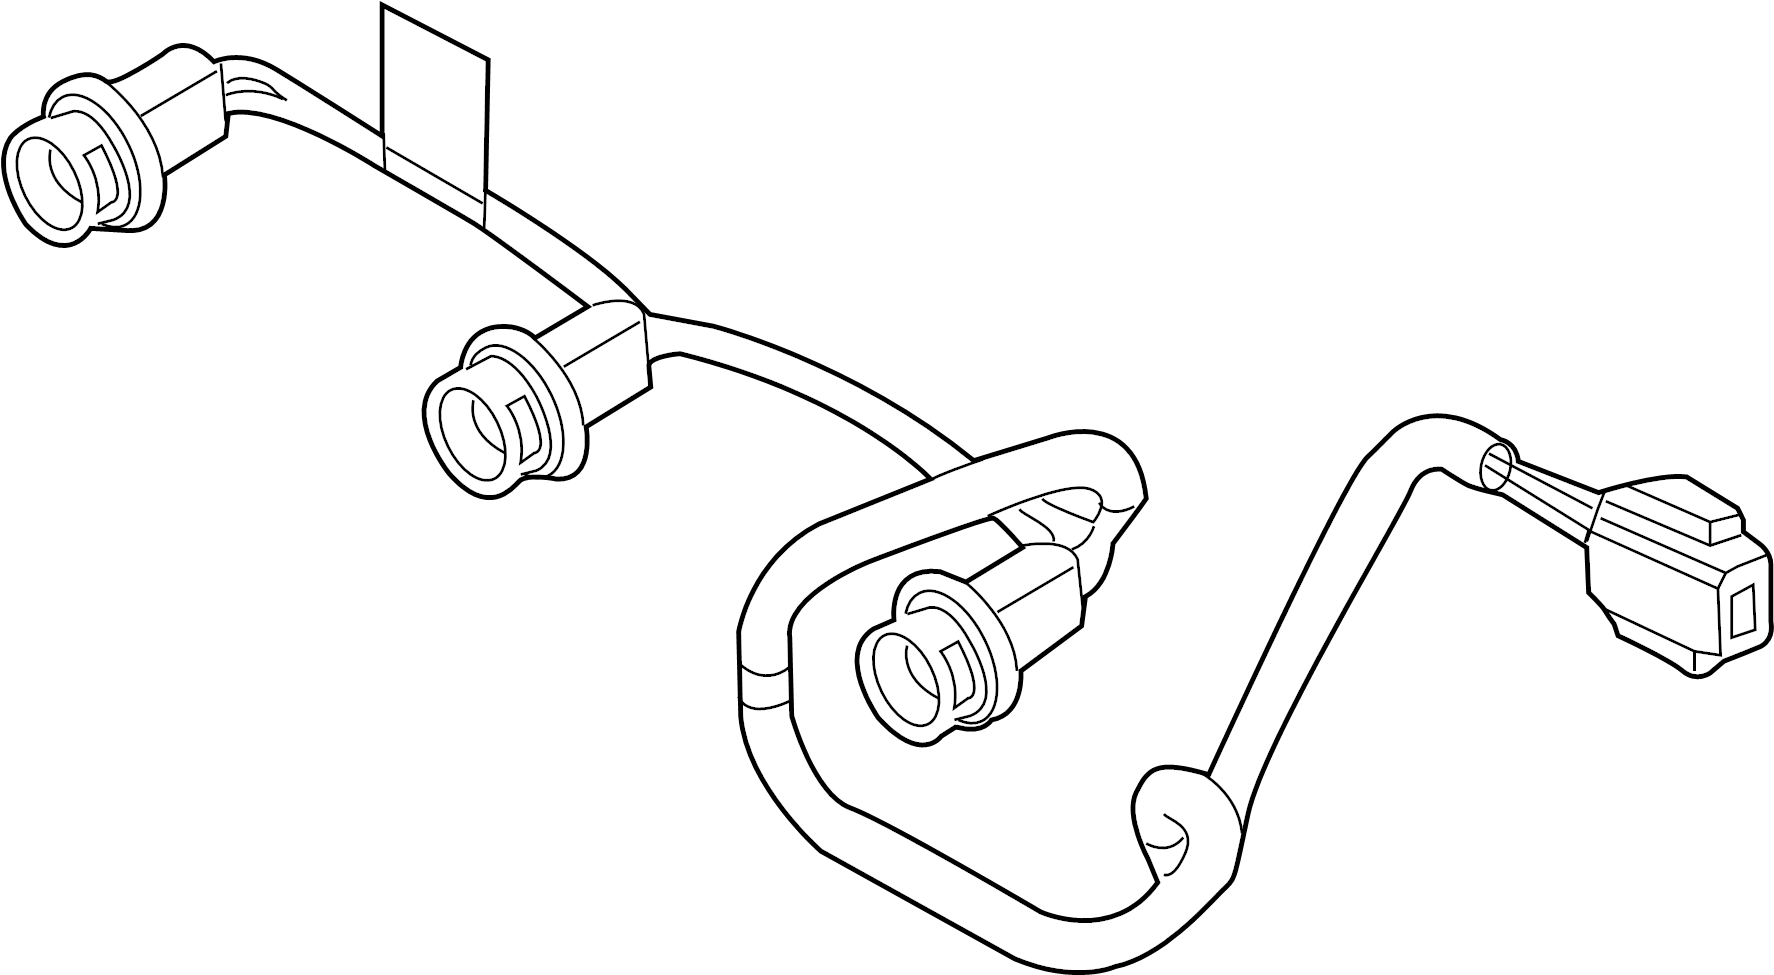 Ford F-150 Harness. Wire. Wiring. StyleSIDE. Connector